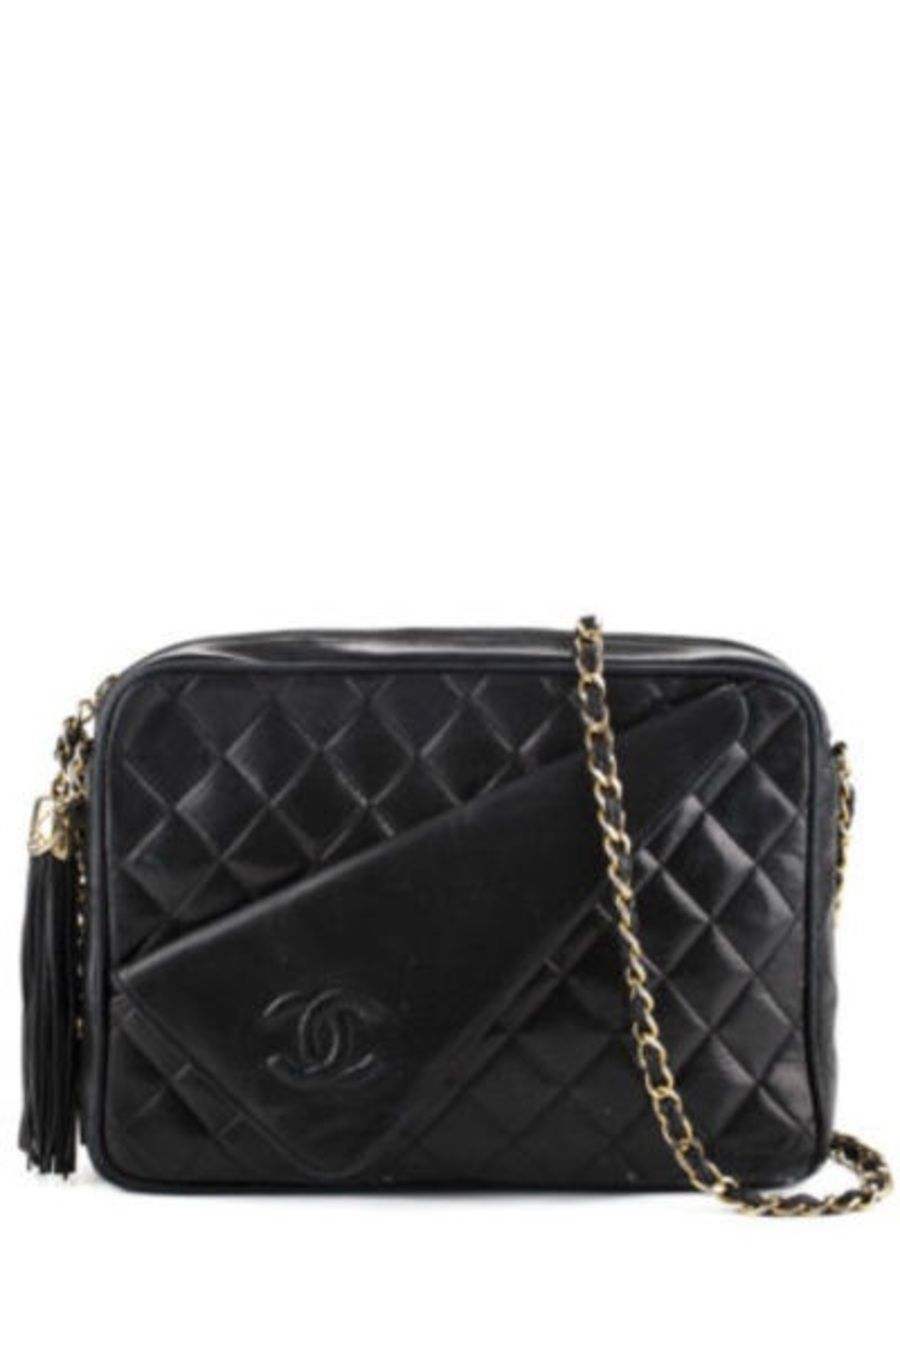 3a21b00be5ed $995 Vintage Chanel Lambskin Camera Bag - Buy at http://www.newfoundluxury